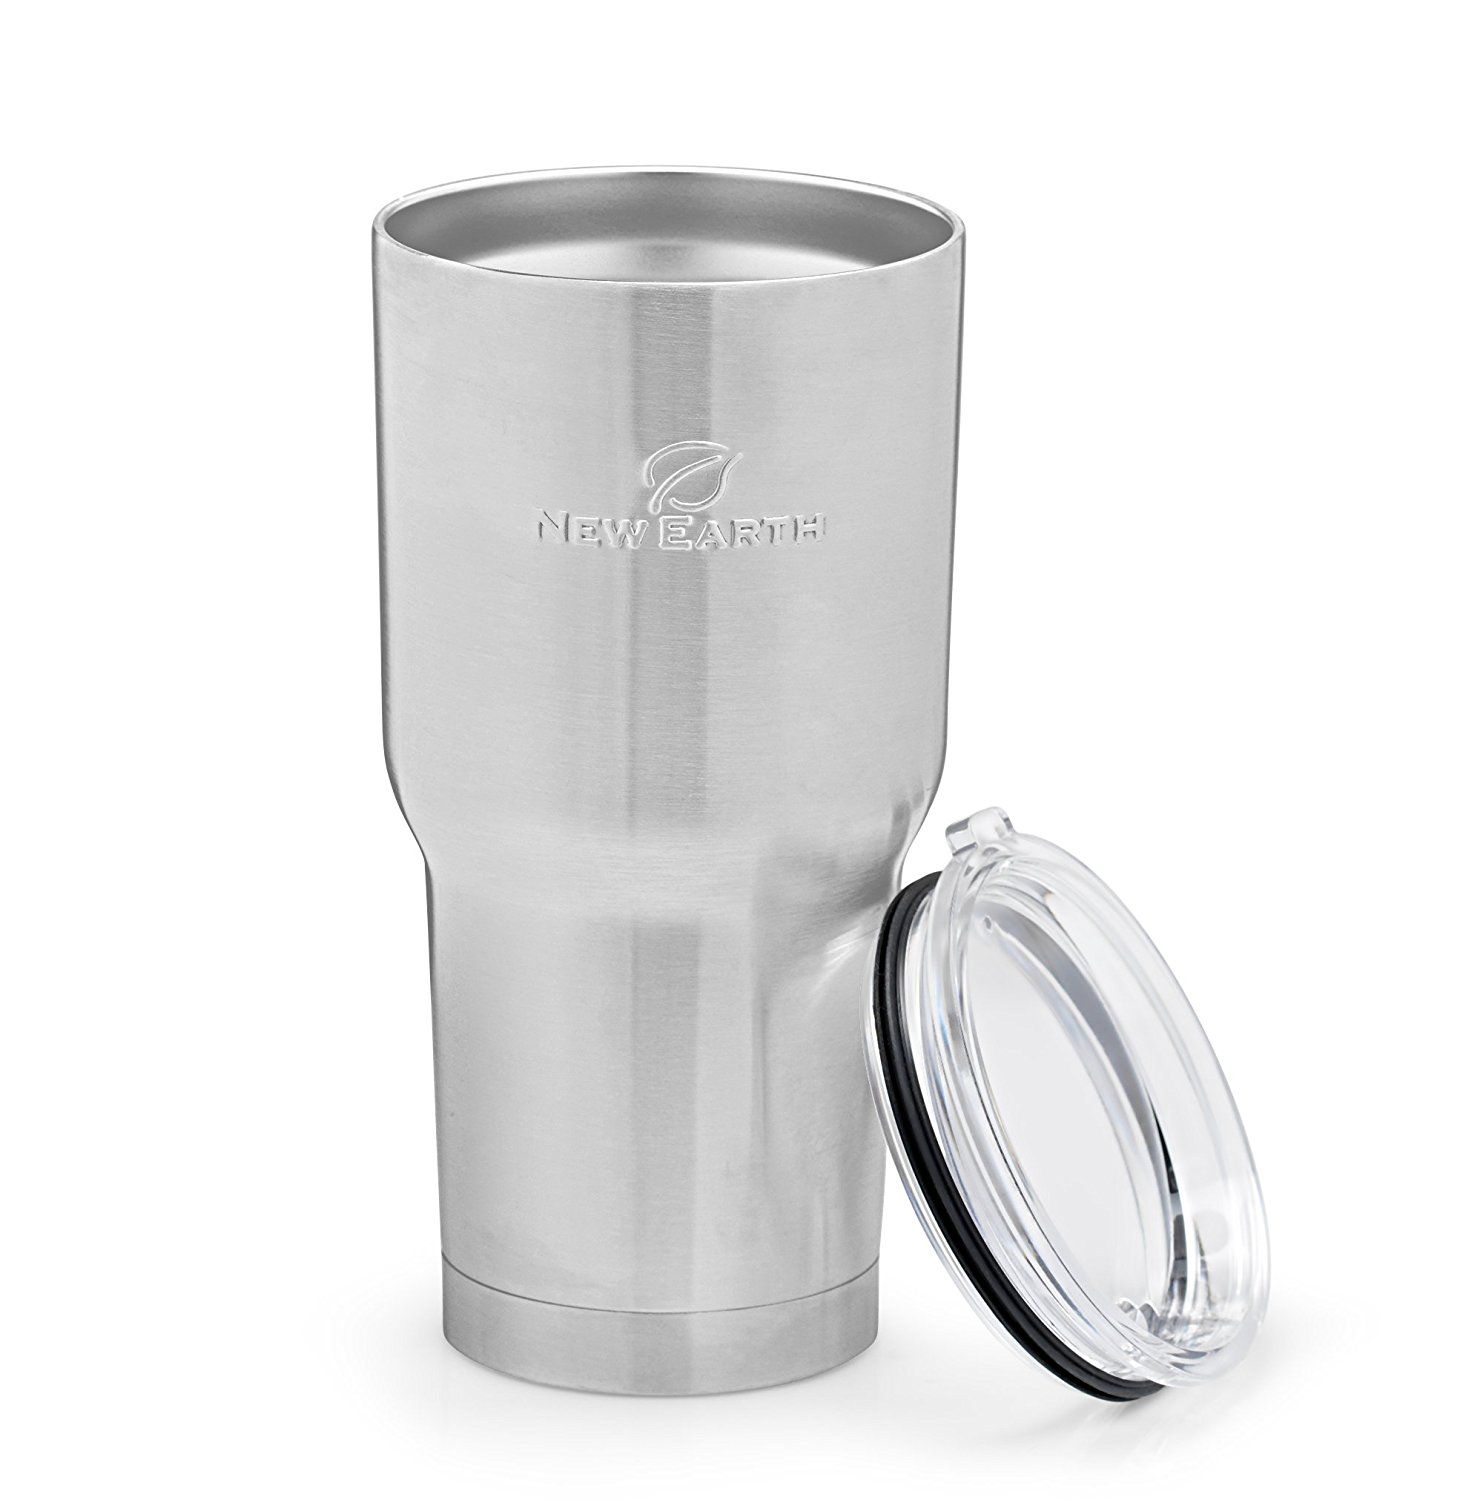 30oz Stainless Steel Tumbler Mug Cup With Lid, Eco